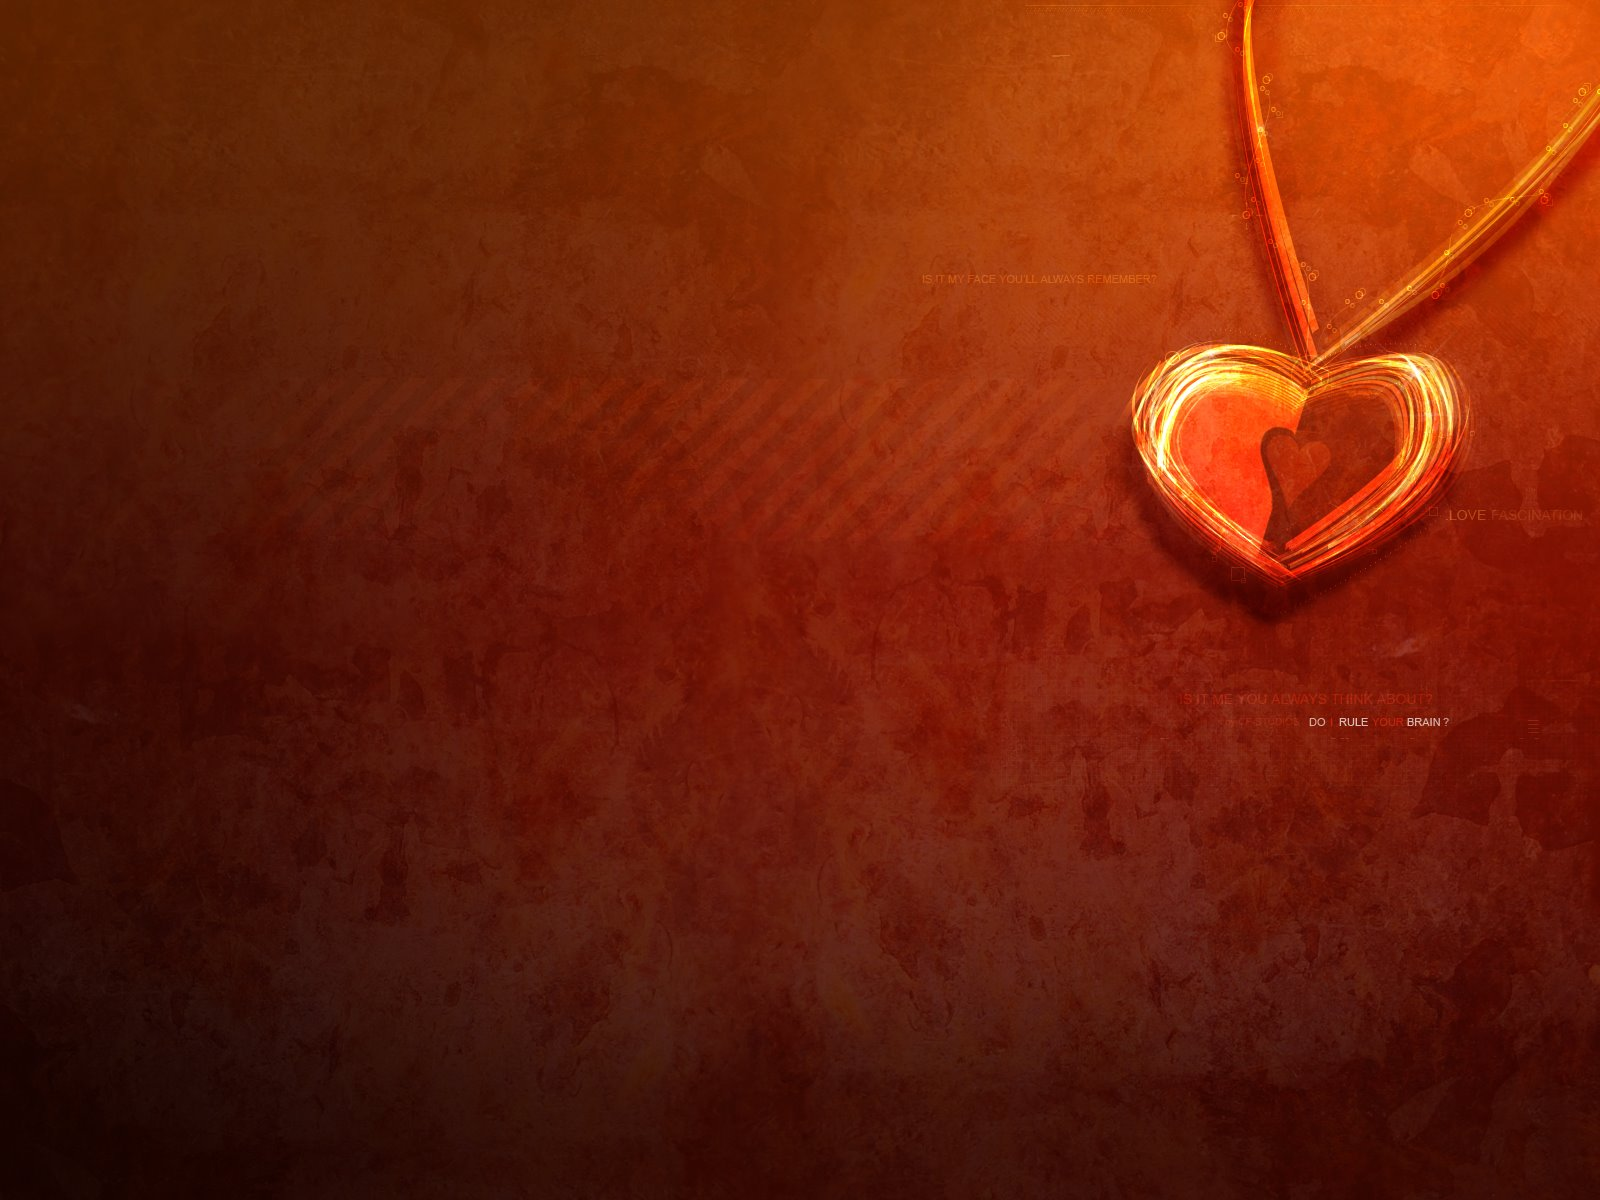 Wallpaper Love Name A : wallpaper: S Love Name Wallpaper